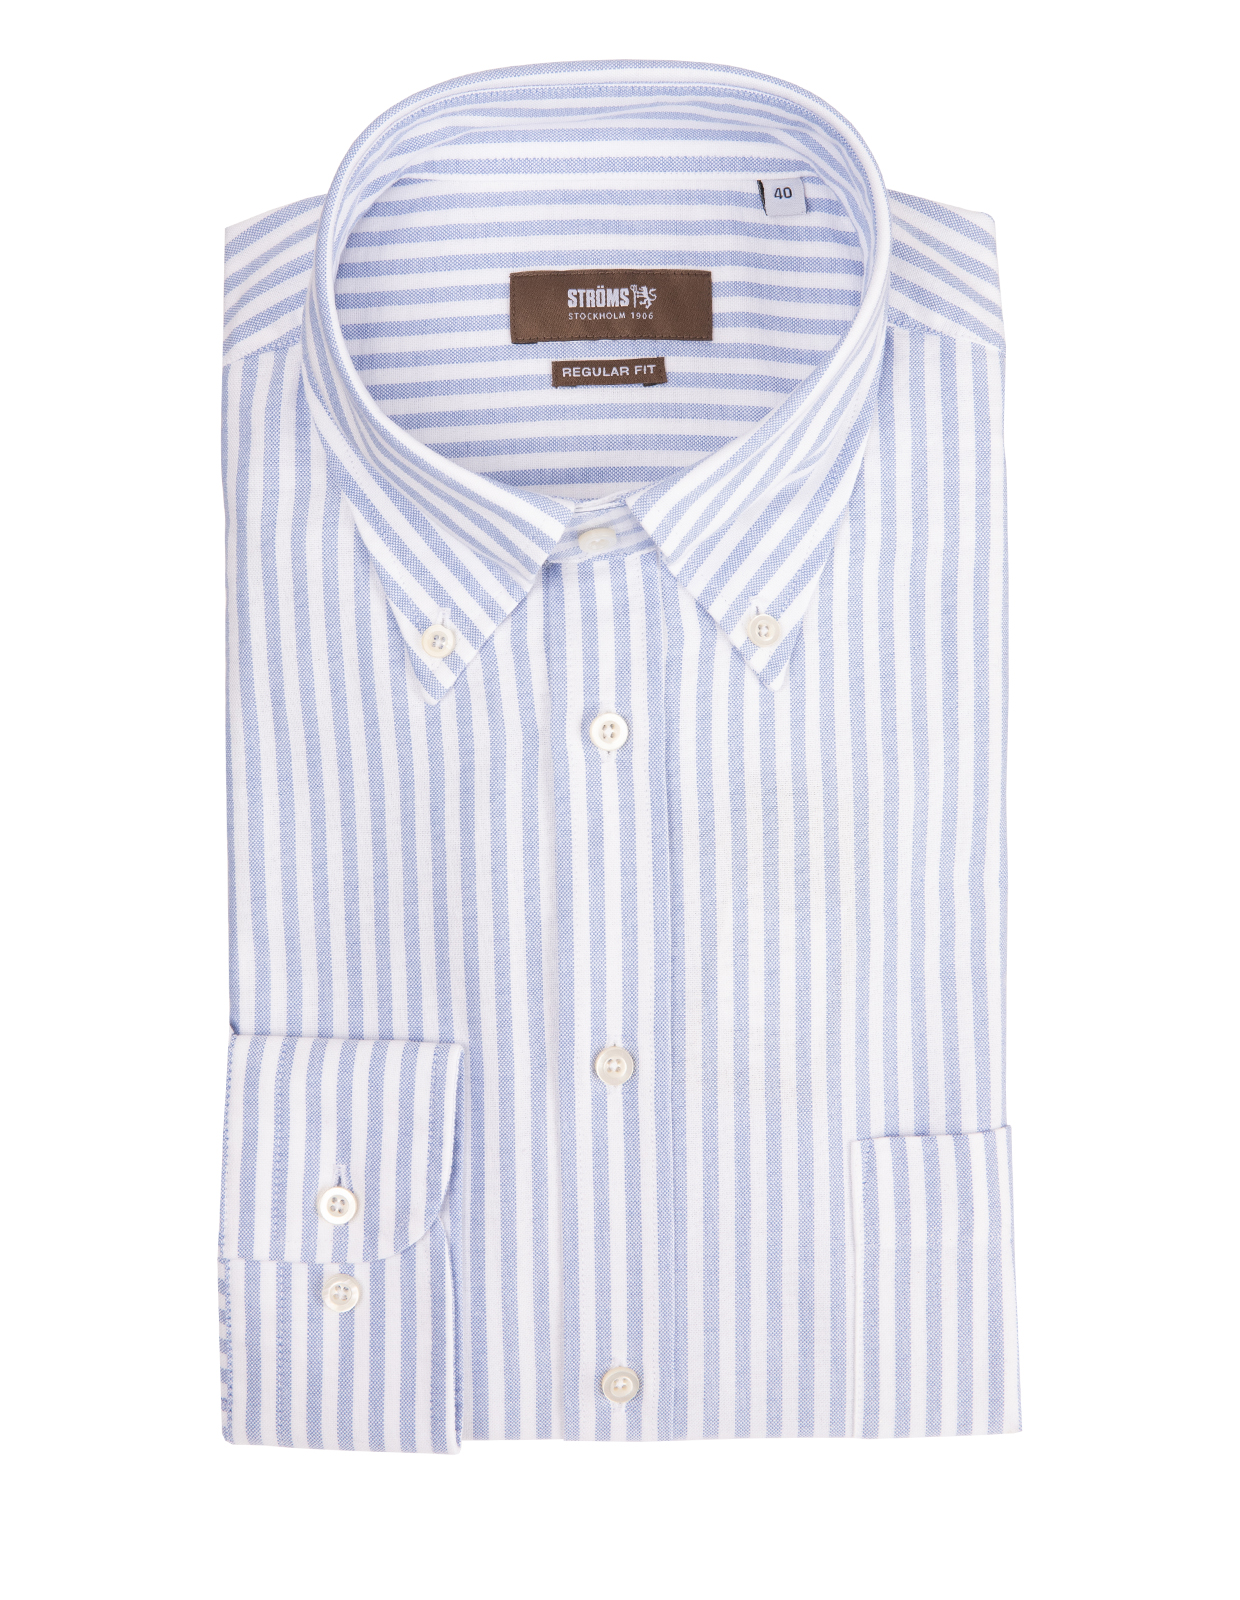 Regular Fit Button Down Oxford Shirt Stripe Blue/White